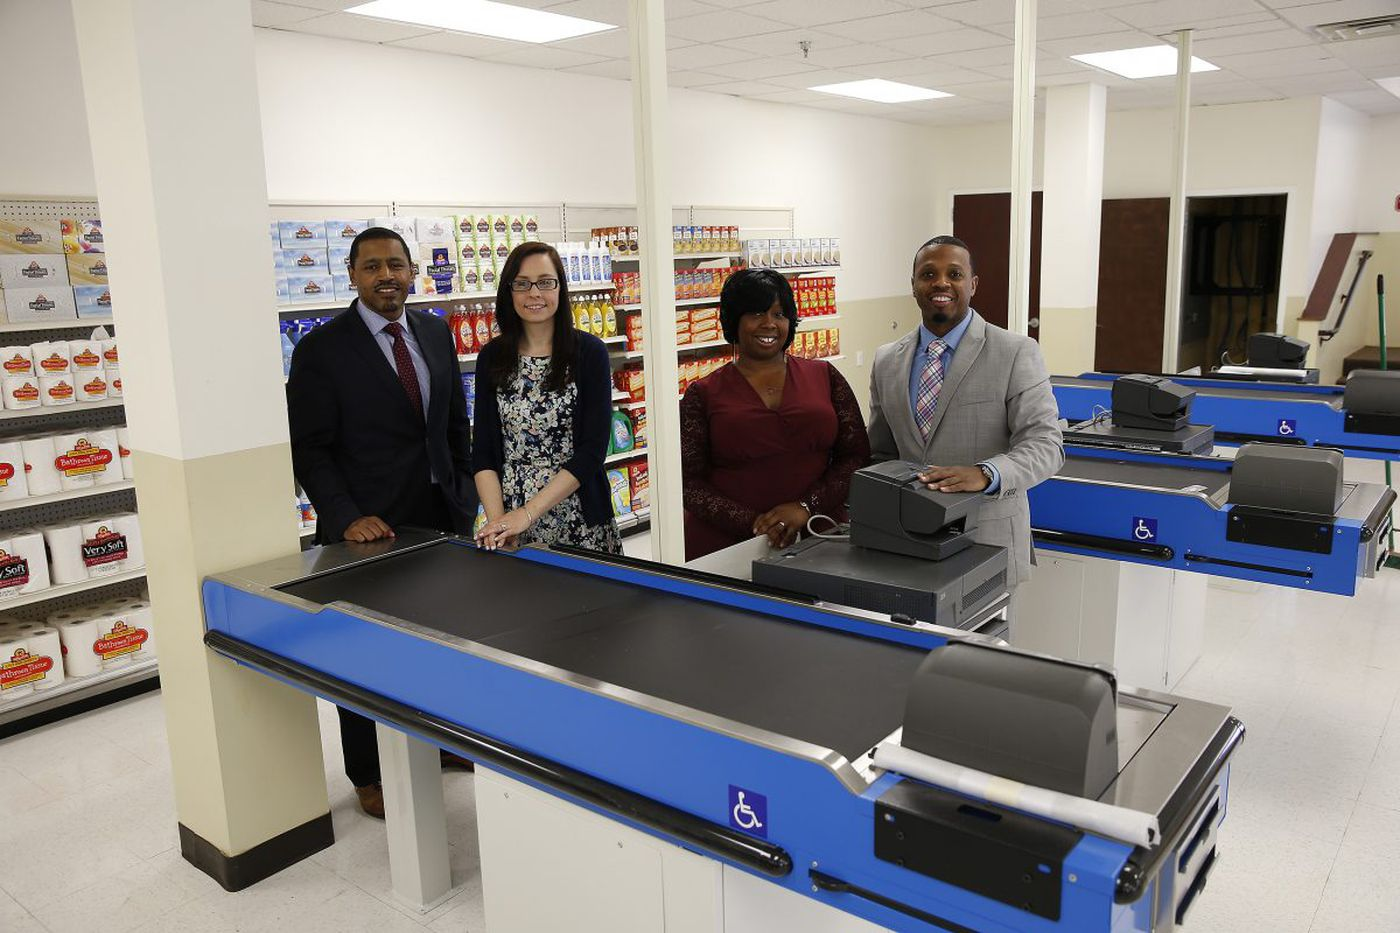 Enon church helps train formerly incarcerated for ShopRite jobs